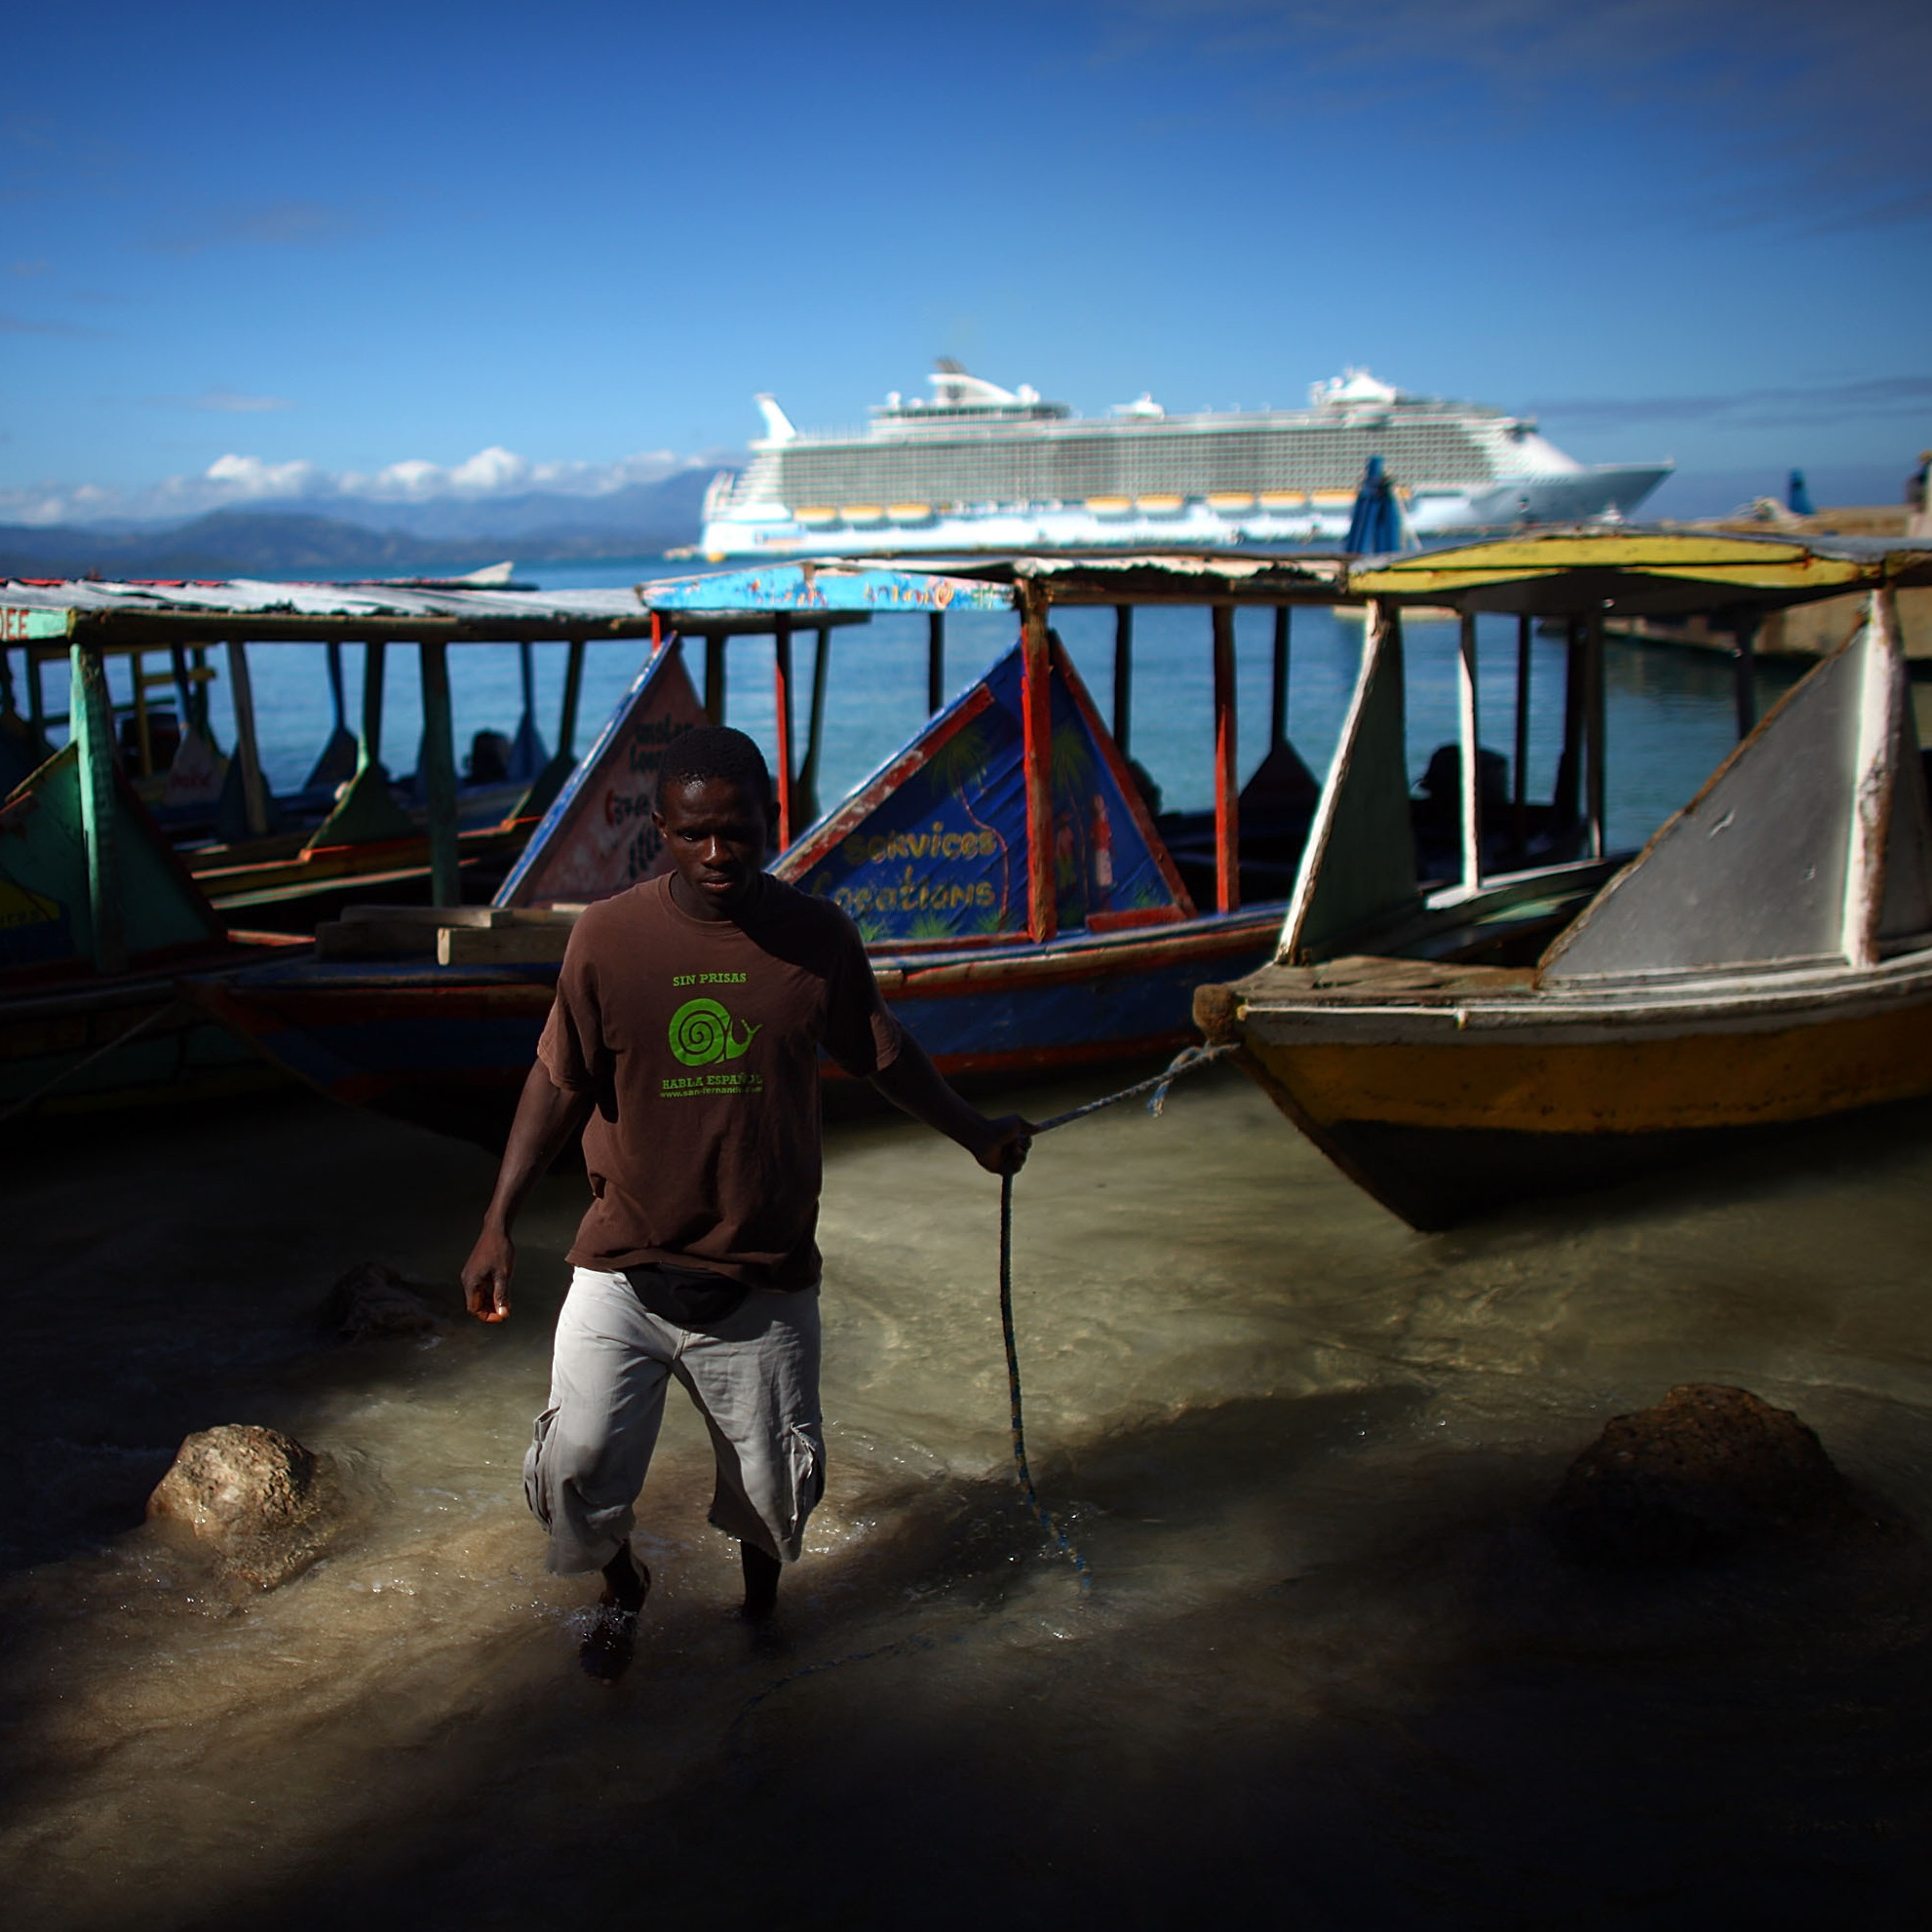 The Royal Caribbean Allure of the Seas sits behind the fishing boats and water taxis near the village of Labadee in northern Haiti. Guests of the cruise ship come ashore but are not allowed beyond a fence that separates the locals from the tourists.